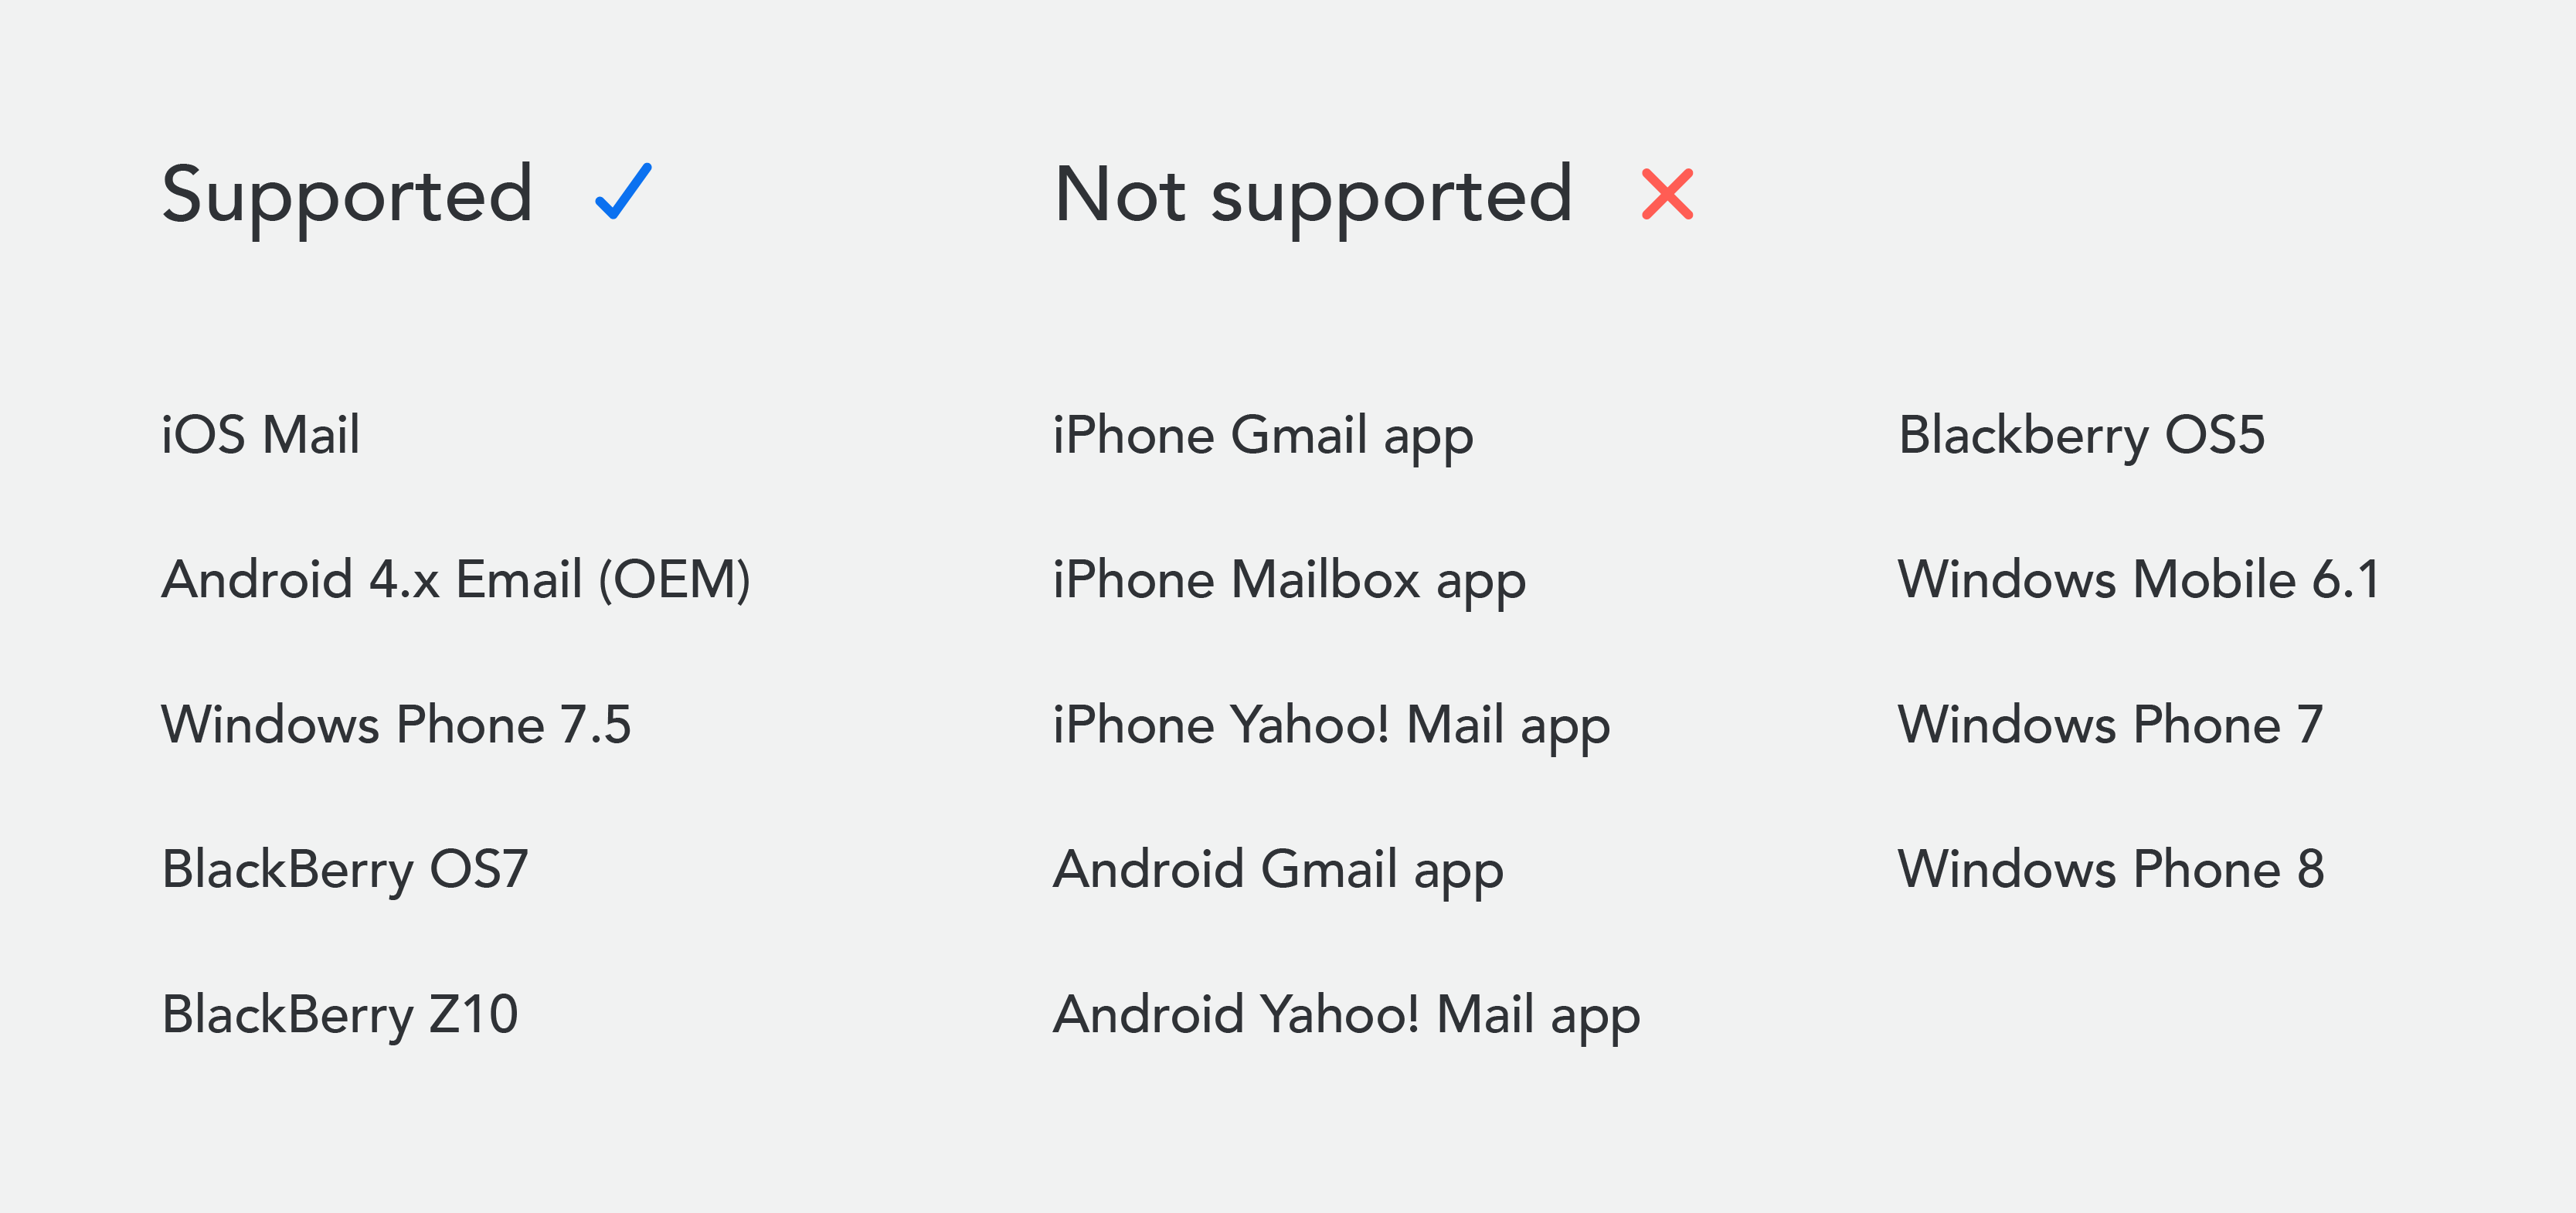 Responsiveness supported: iOS Mail, Android 4.x Email (OEM), Windows Phone 7.5, BlackBerry OS7, Blackberry Z10. // Responsiveness not supported: iPhone Gmail app, iPhone Mailbox app, iPhone Yahoo!Mail app, Android Yahoo! Mail app, Blackberry OS5, Windows